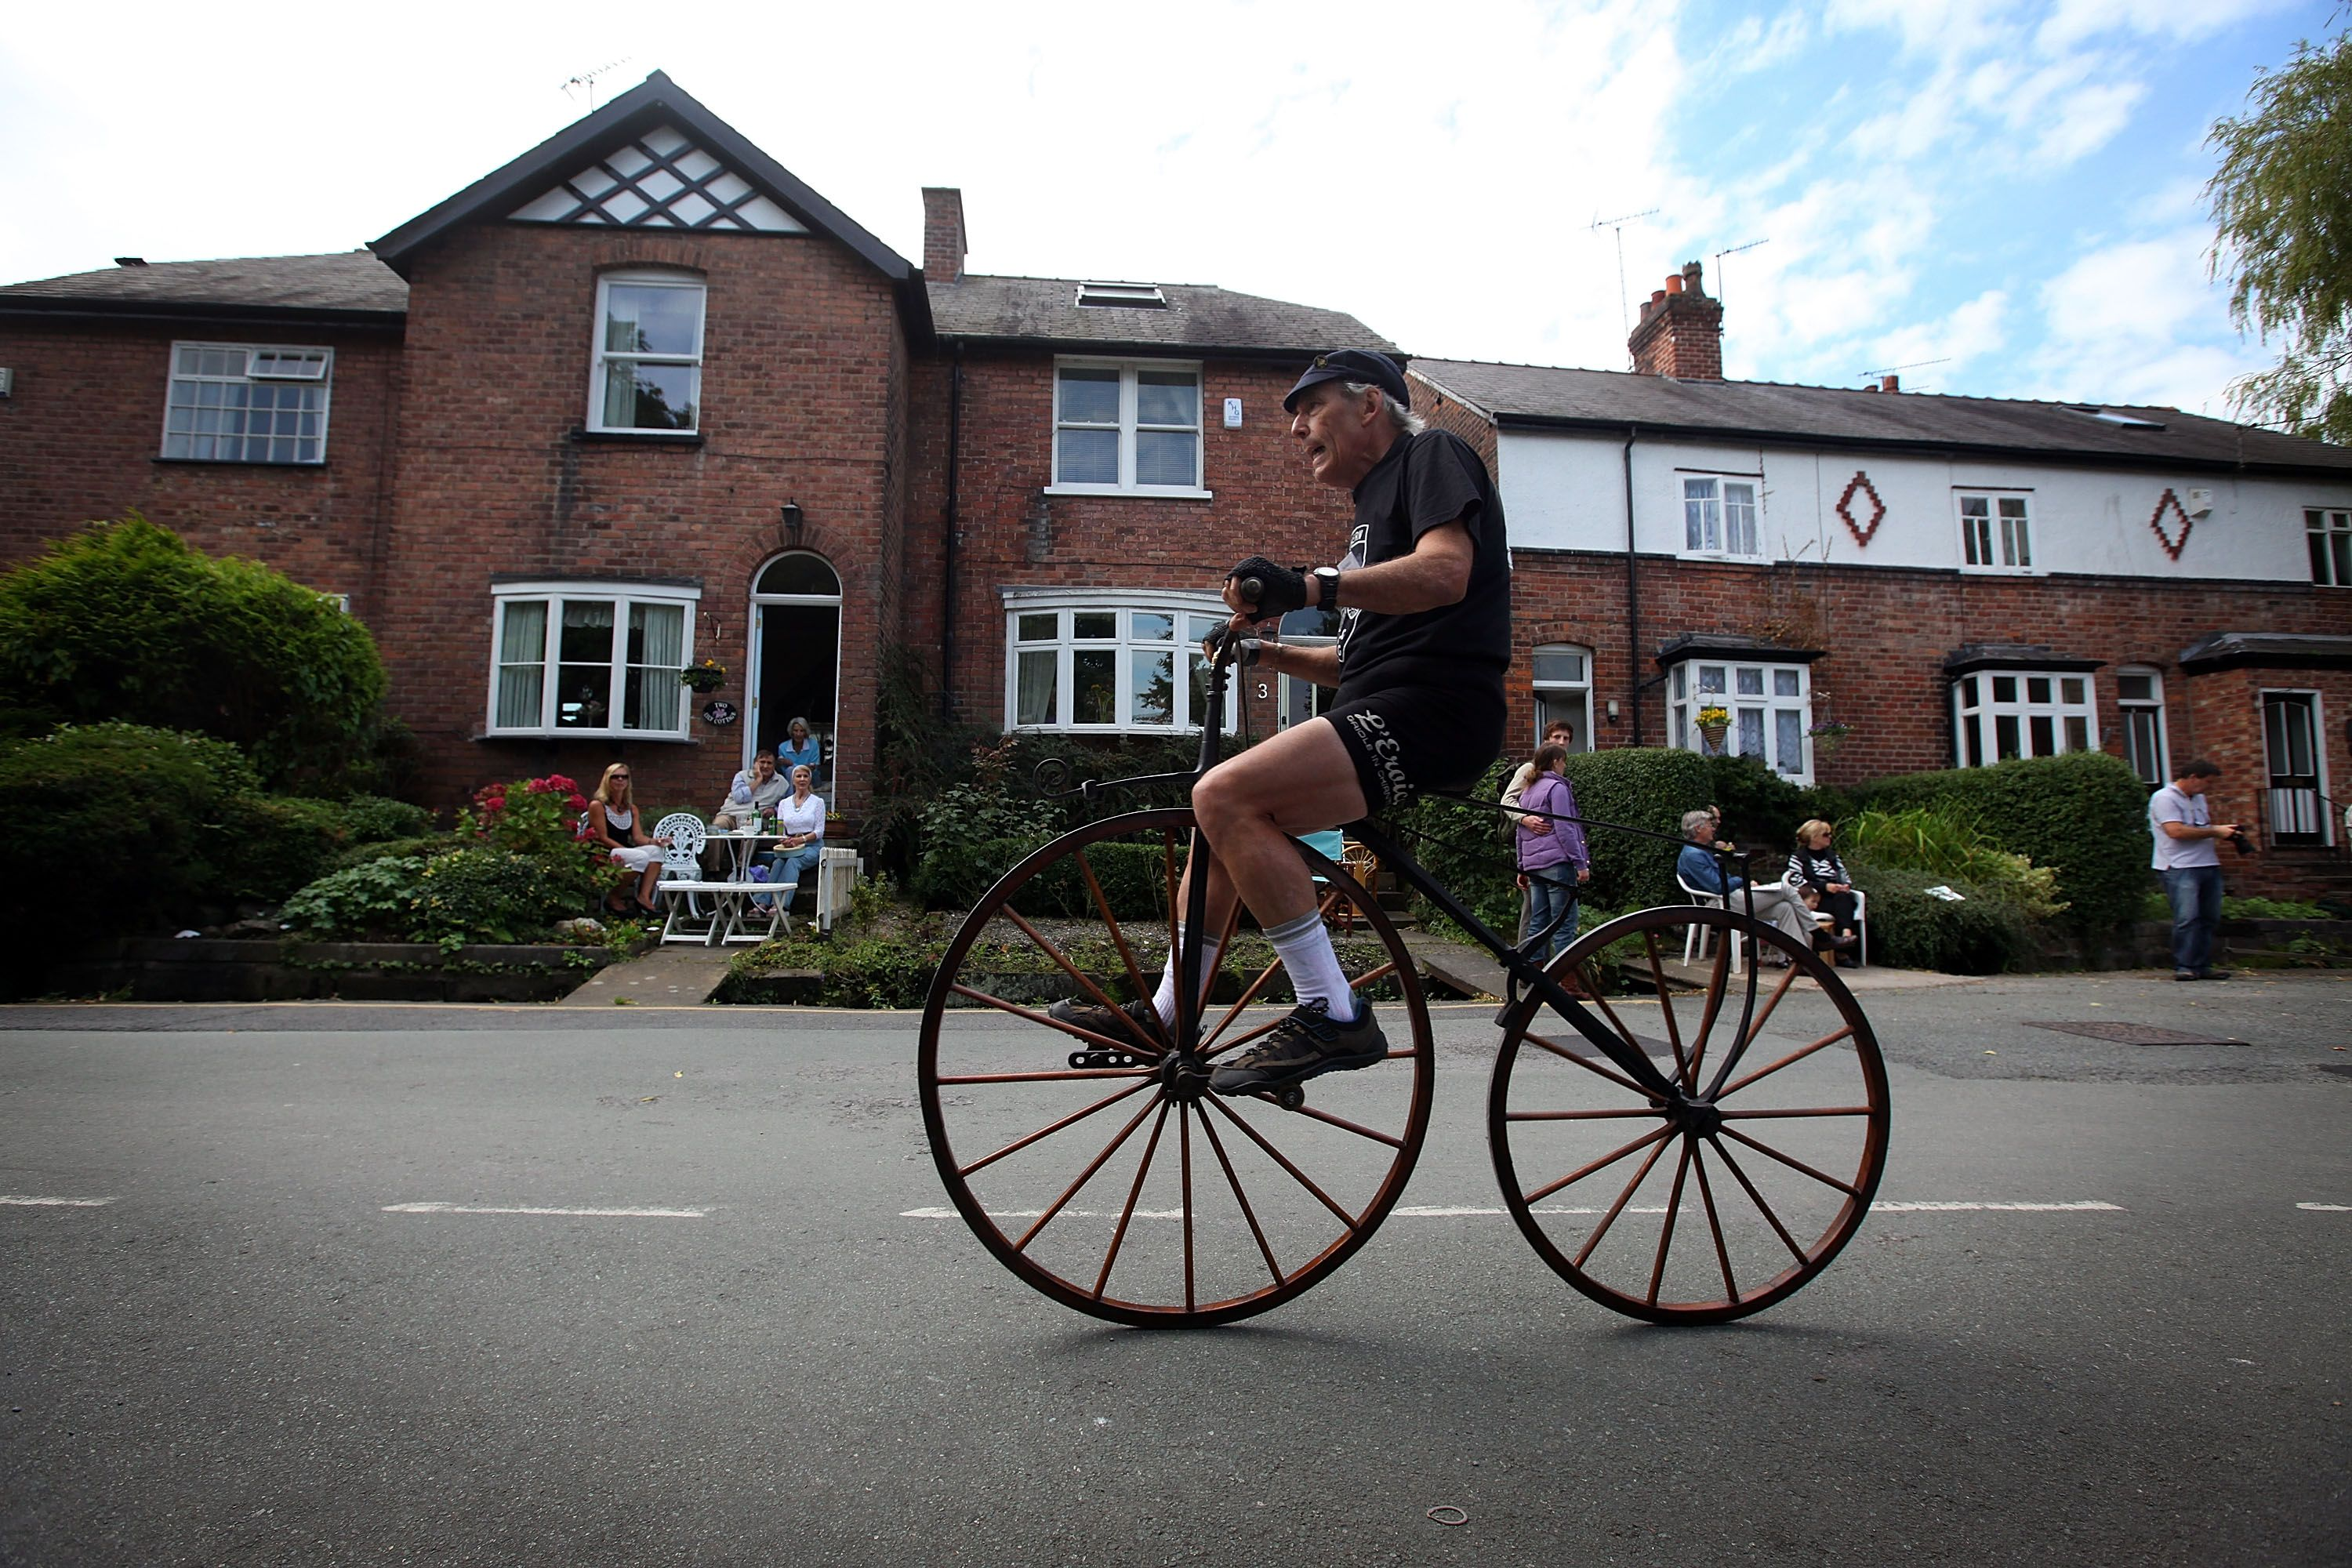 A cyclist takes part in a warmup race riding his bone shaker before the Great Knutsford Penny Farthing Race on September 5, 2010 in Knutsford, England. Original and replica cycles race around the moor and is only held once every 10 years. Competitors have to complete as many laps of the one kilometer course as many times as they can in the three hour time limit.